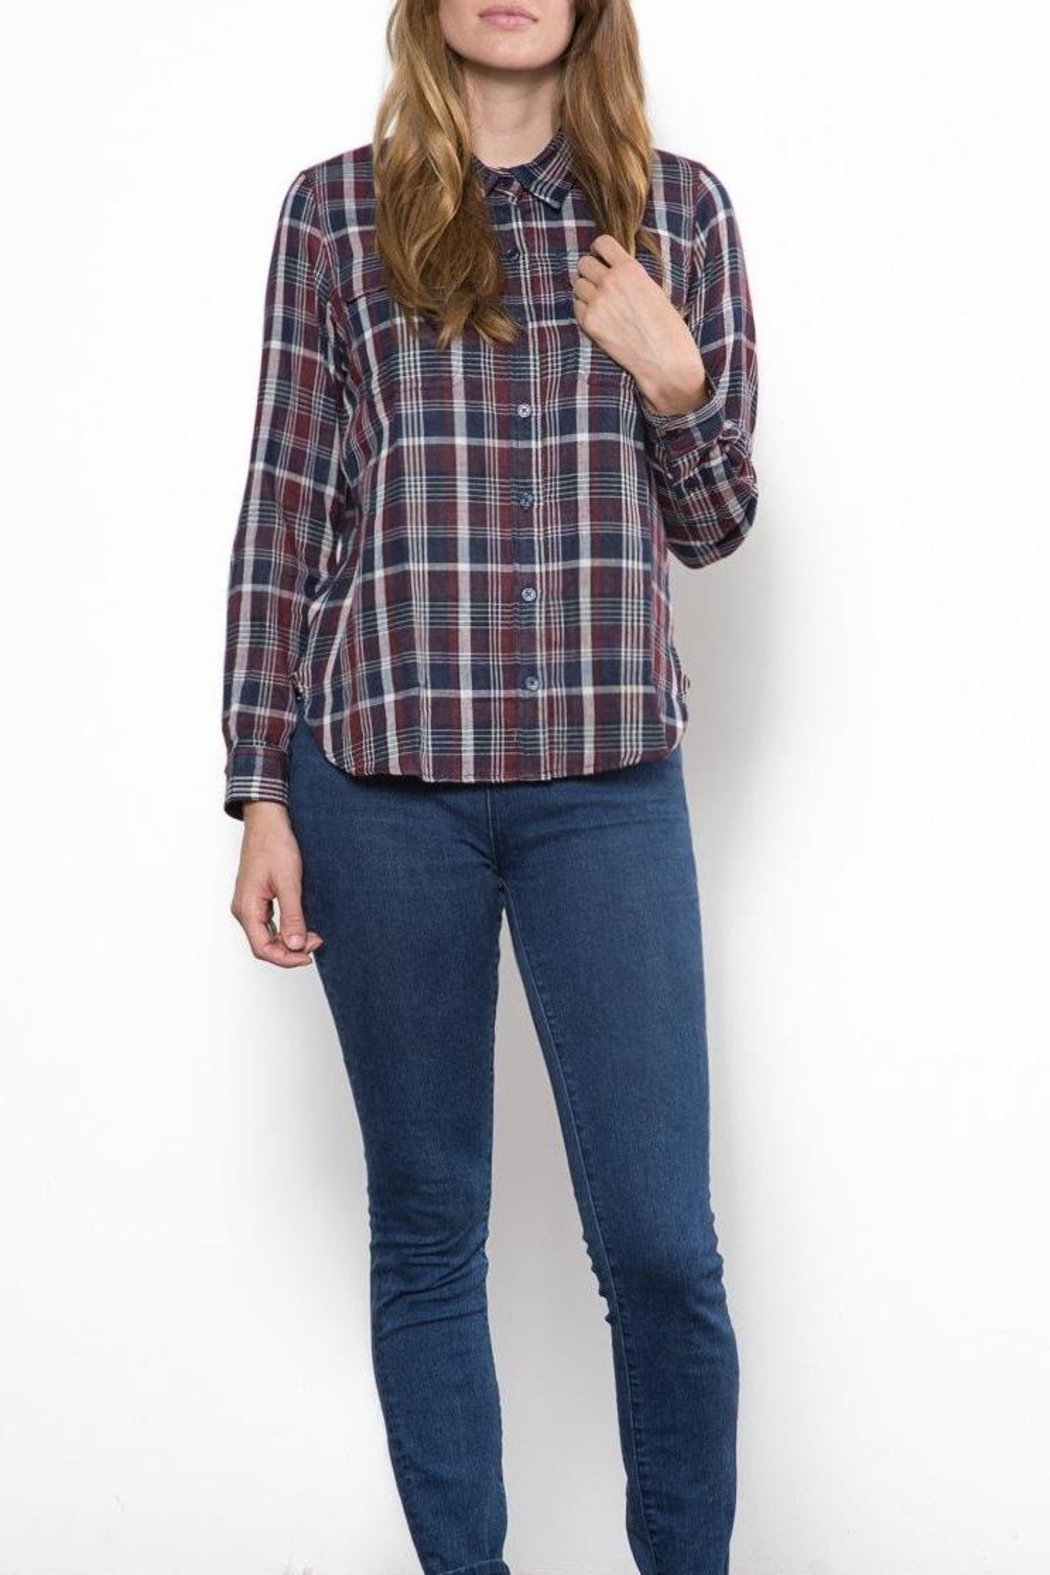 Capulet The Kaia Buttondown Top - Front Cropped Image